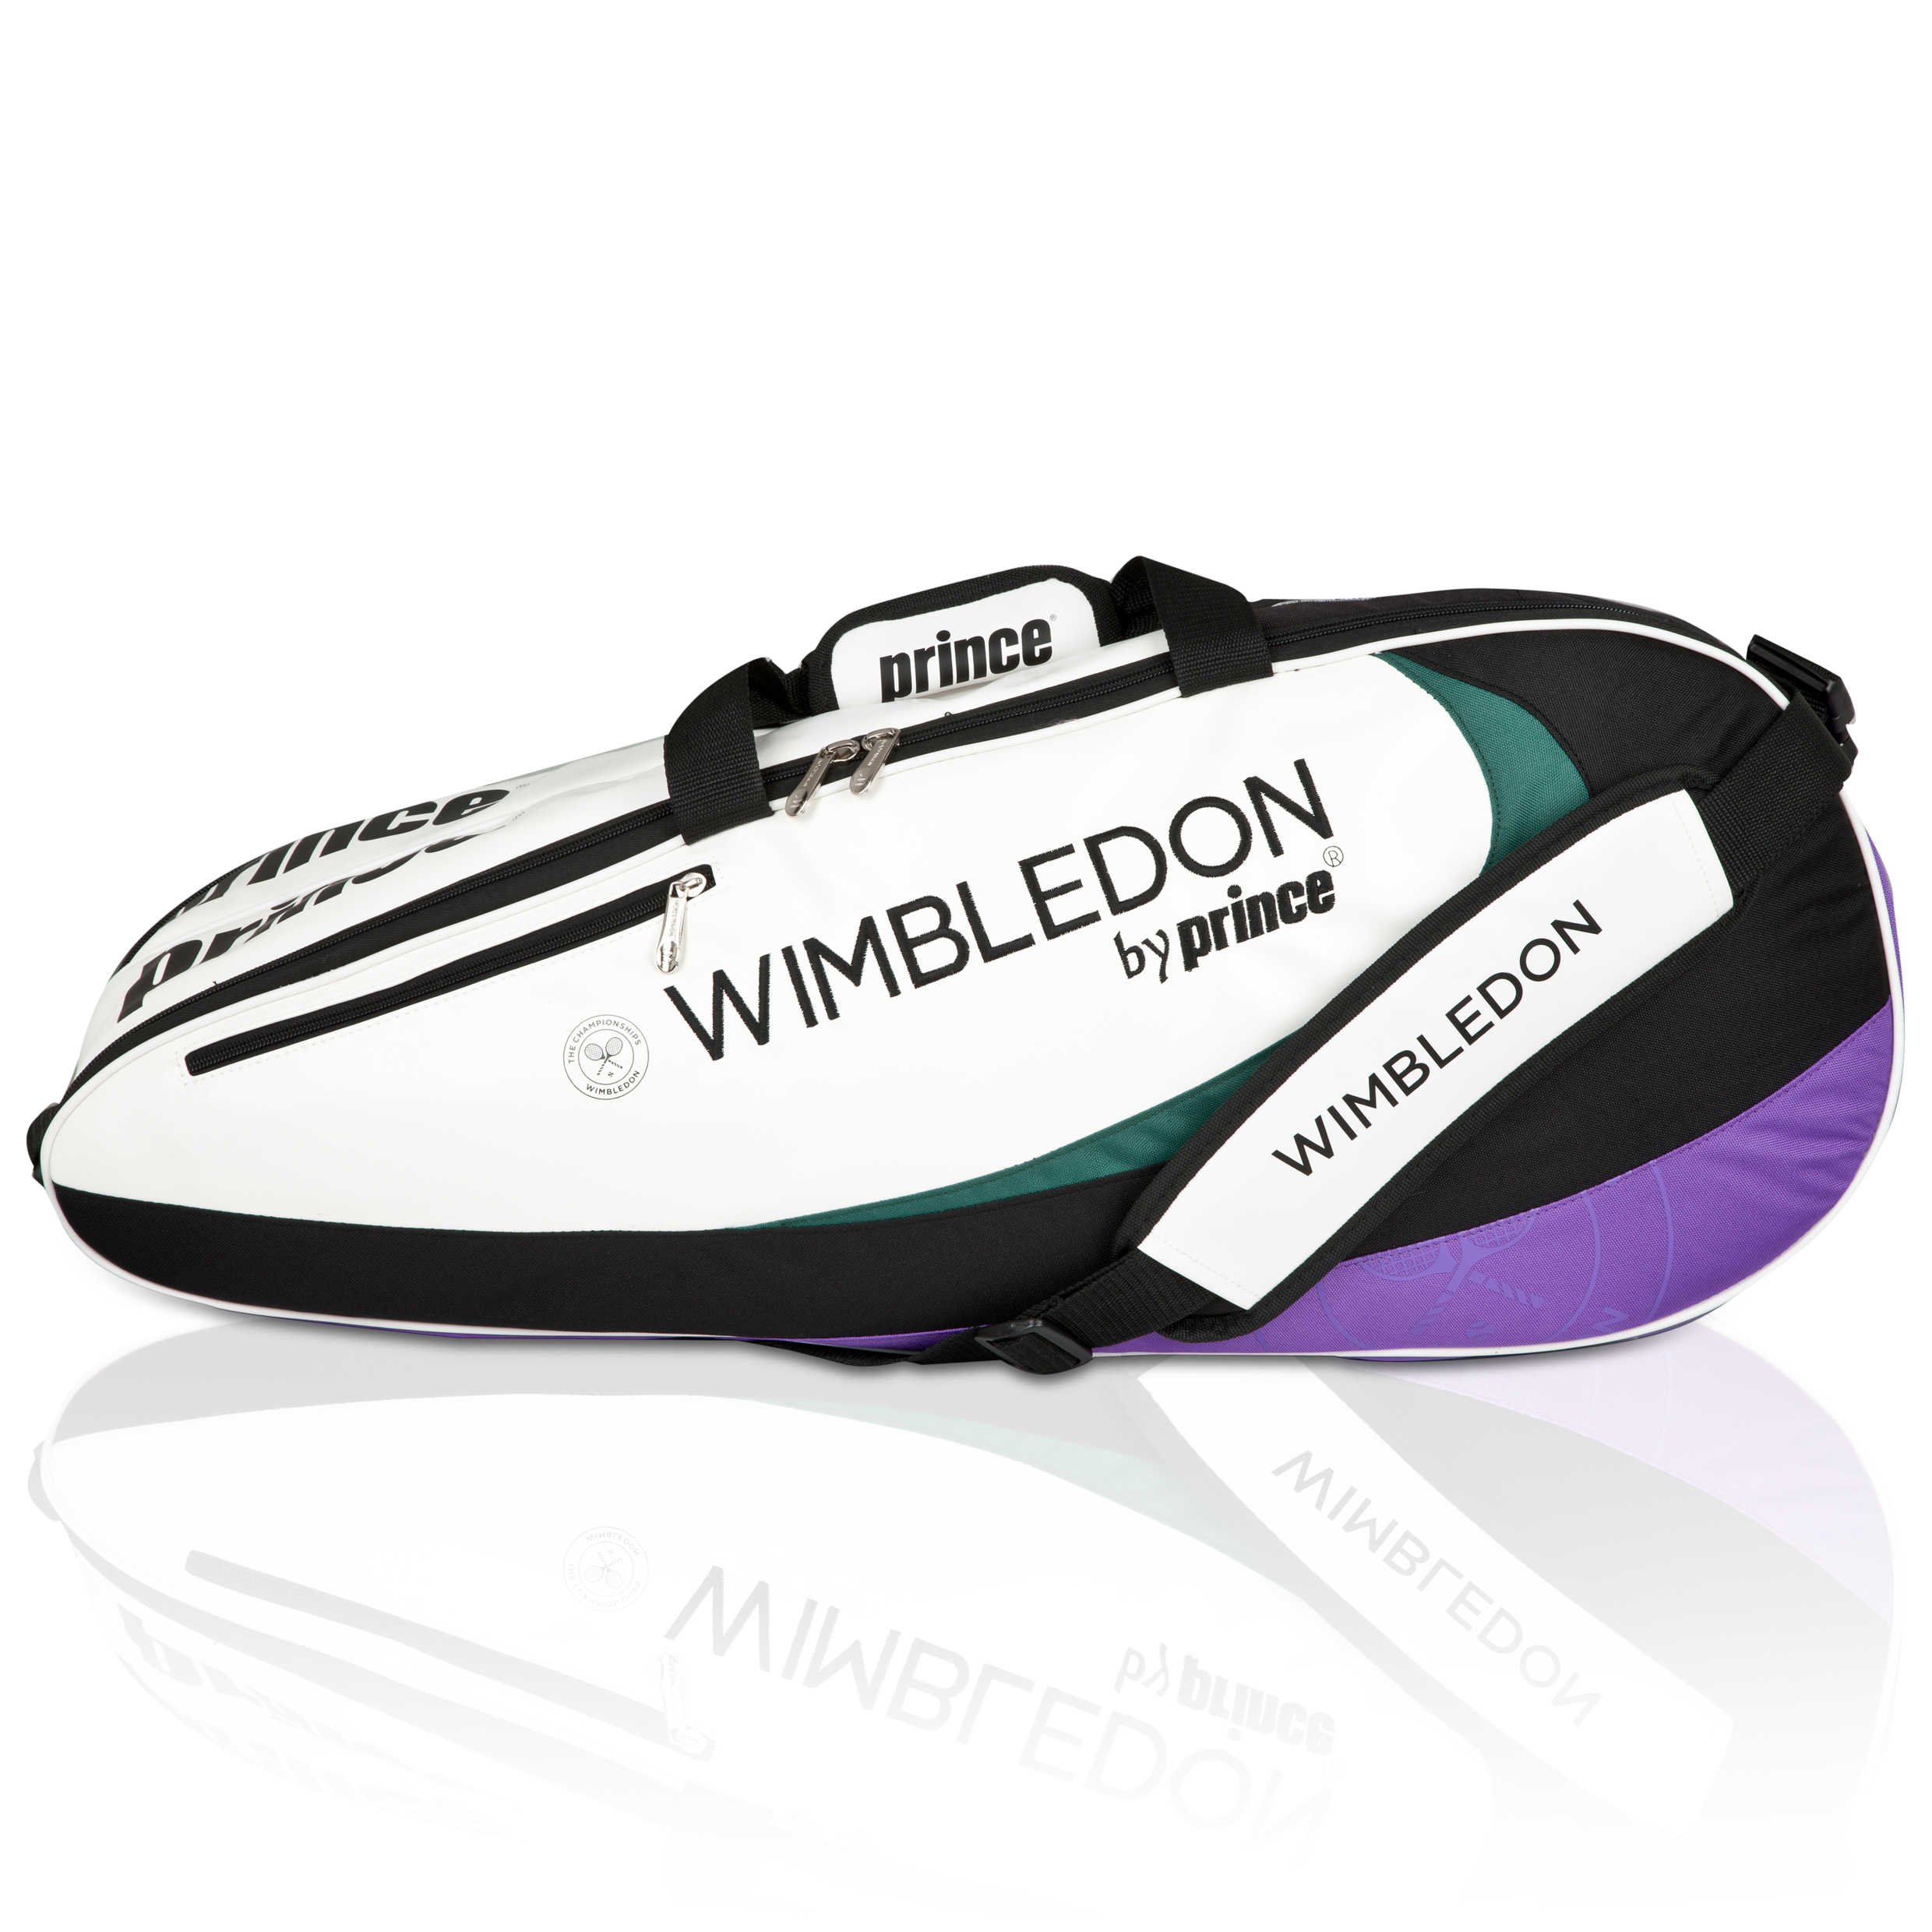 Wimbledon By Prince Top Seed Collection 6 Pack Racket Bag